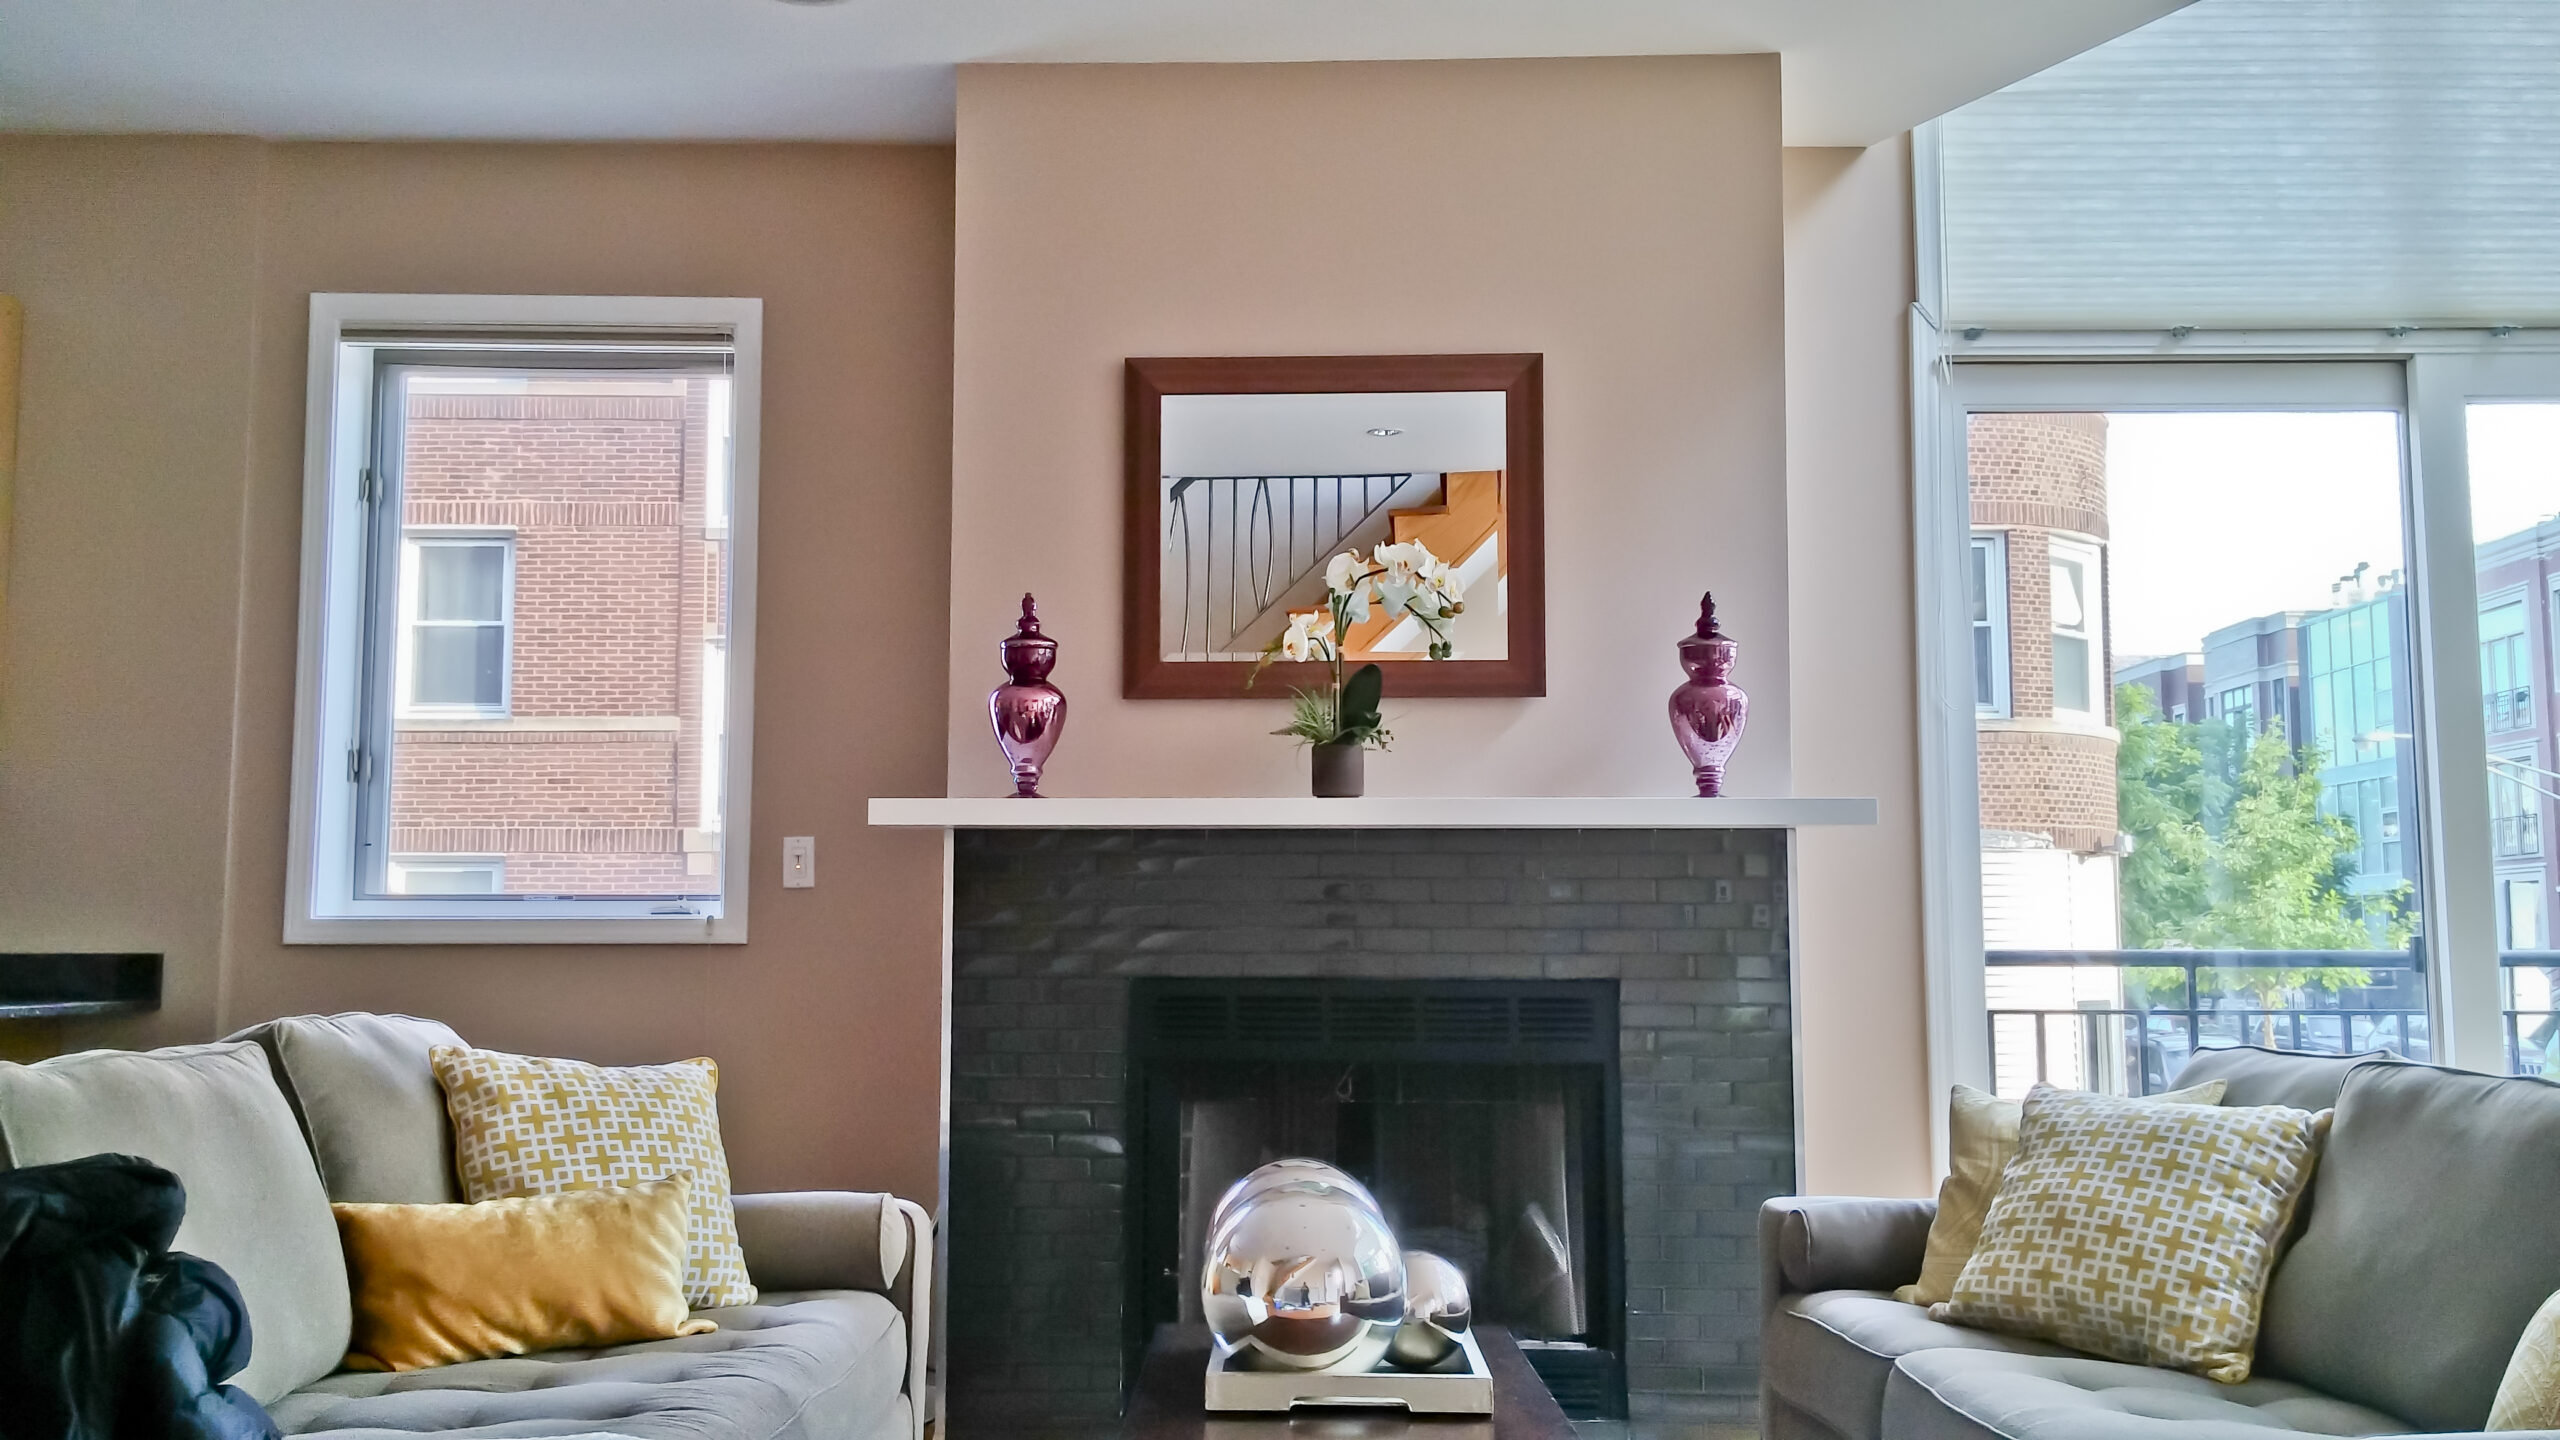 Chicago Wicker Park Condo Renovation